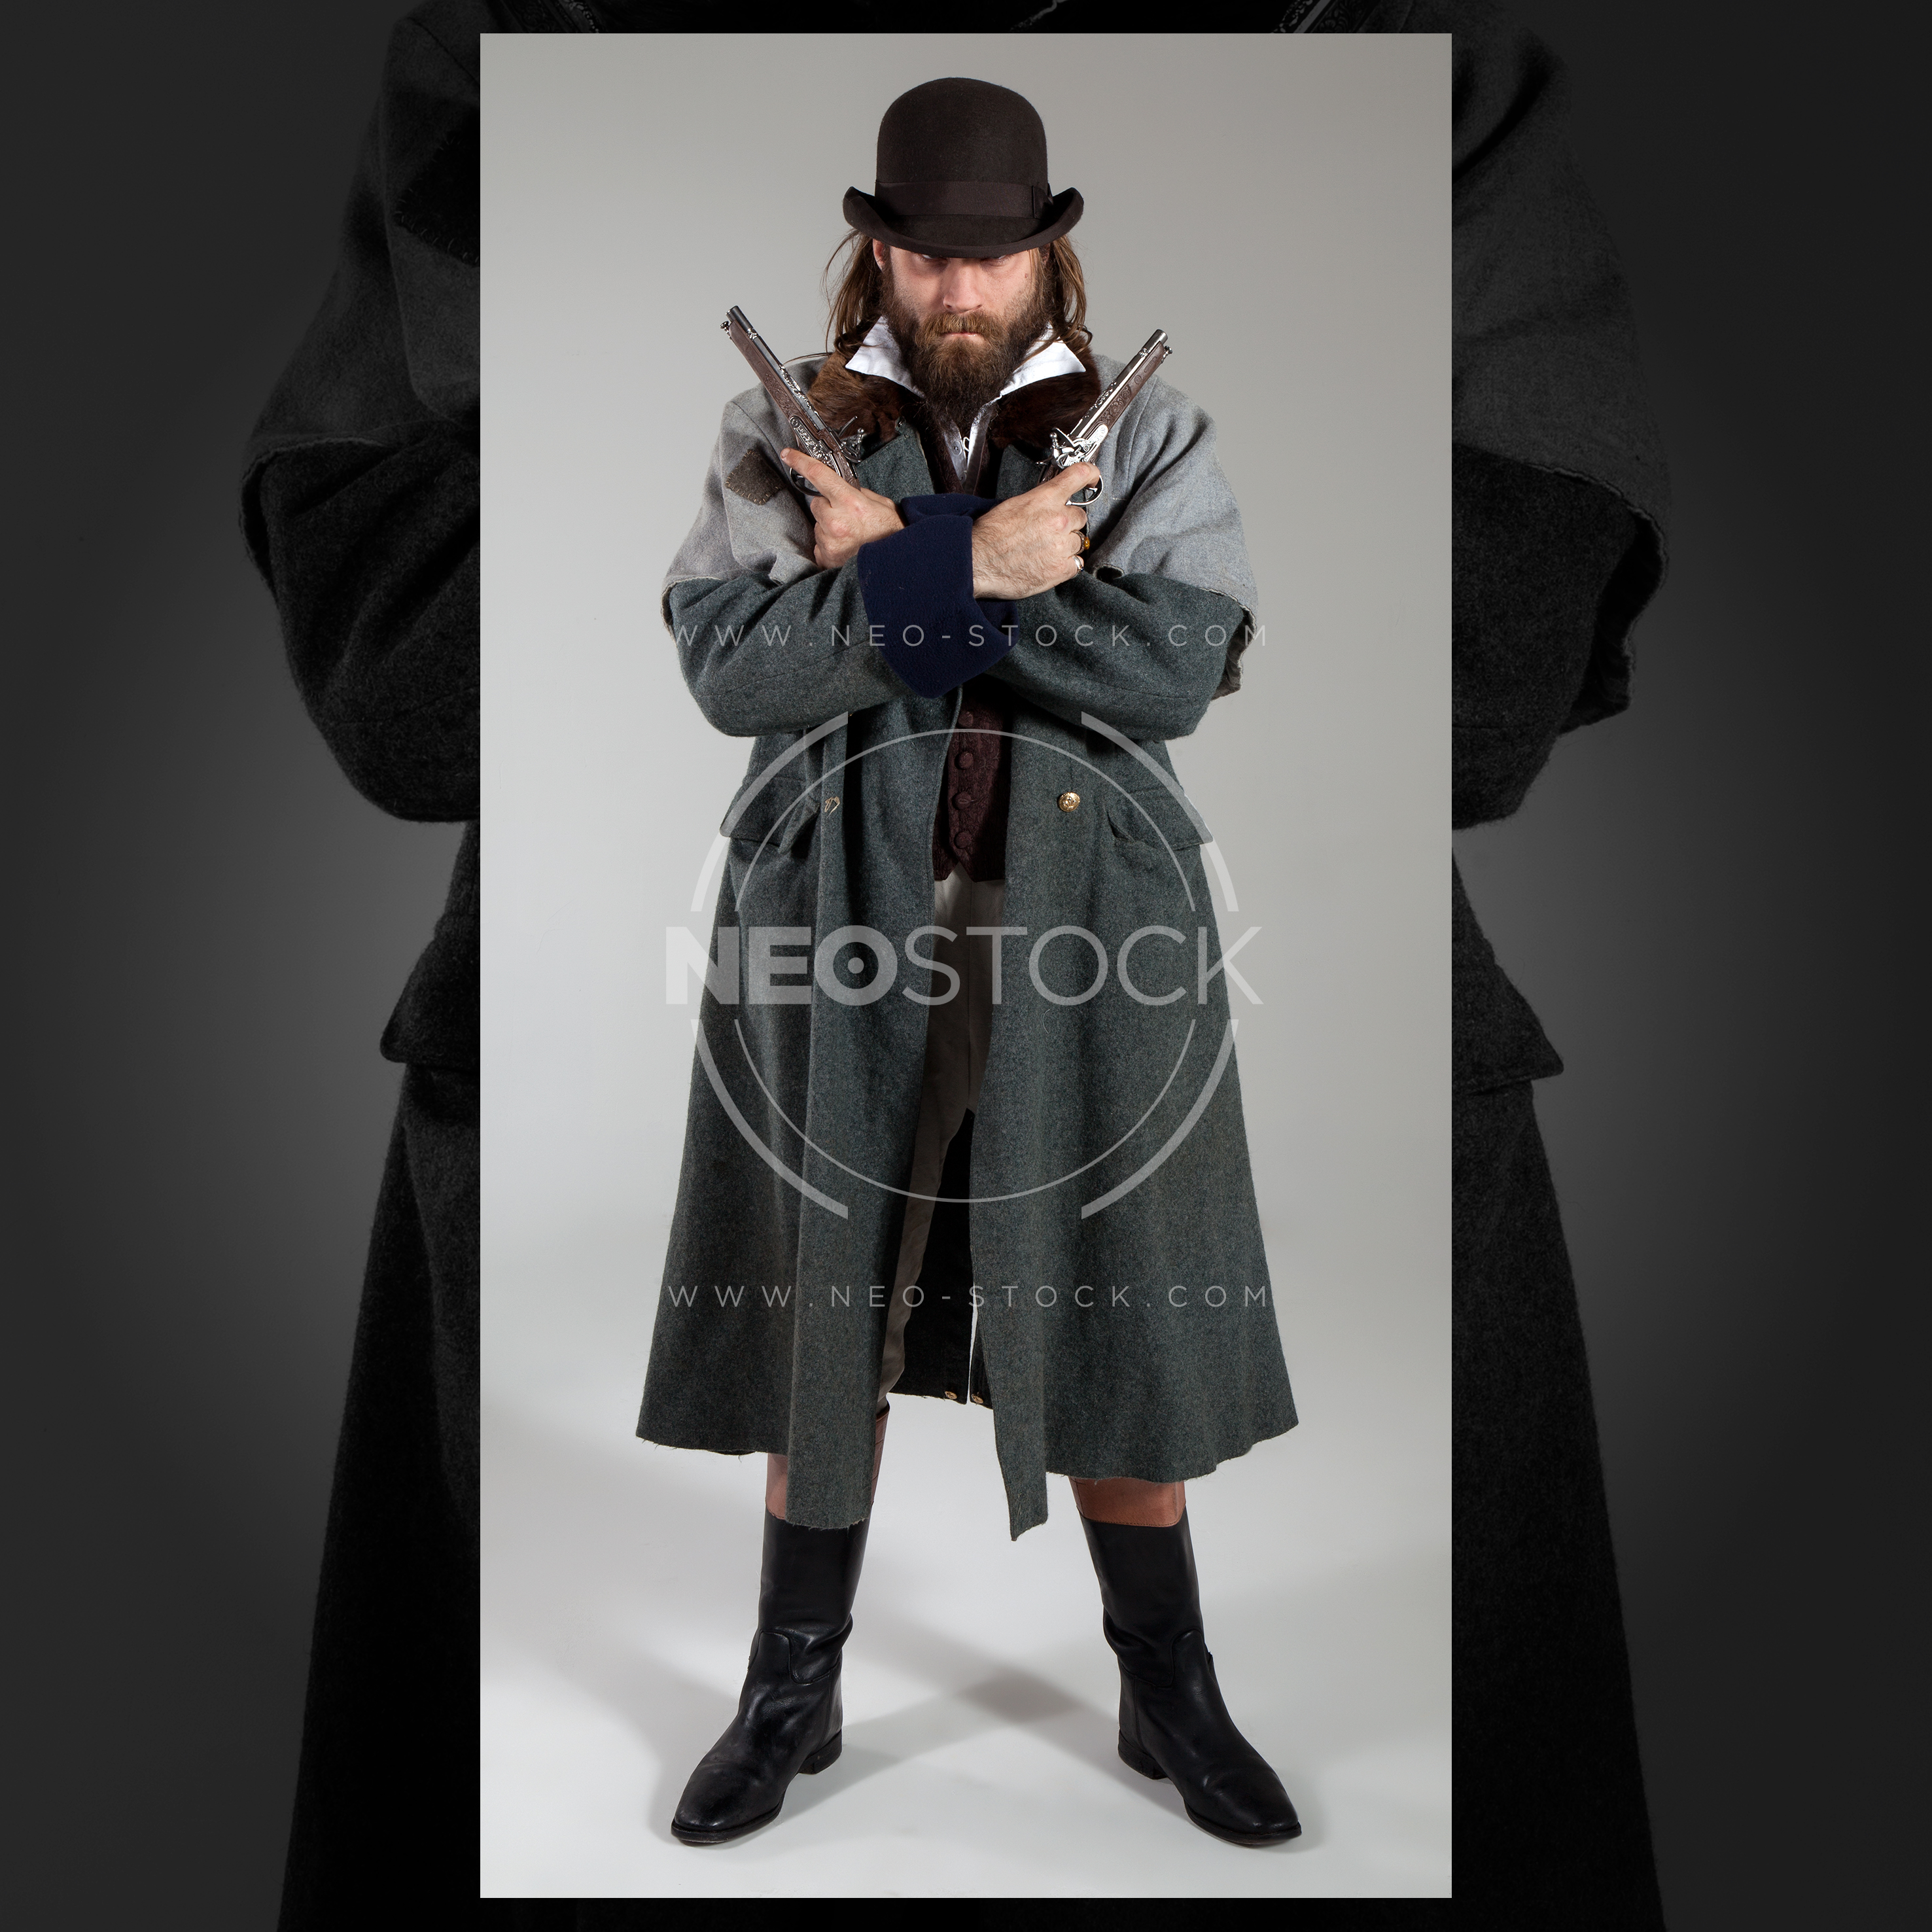 NeoStock - Karlos Pirate Rogue - Stock Photography II